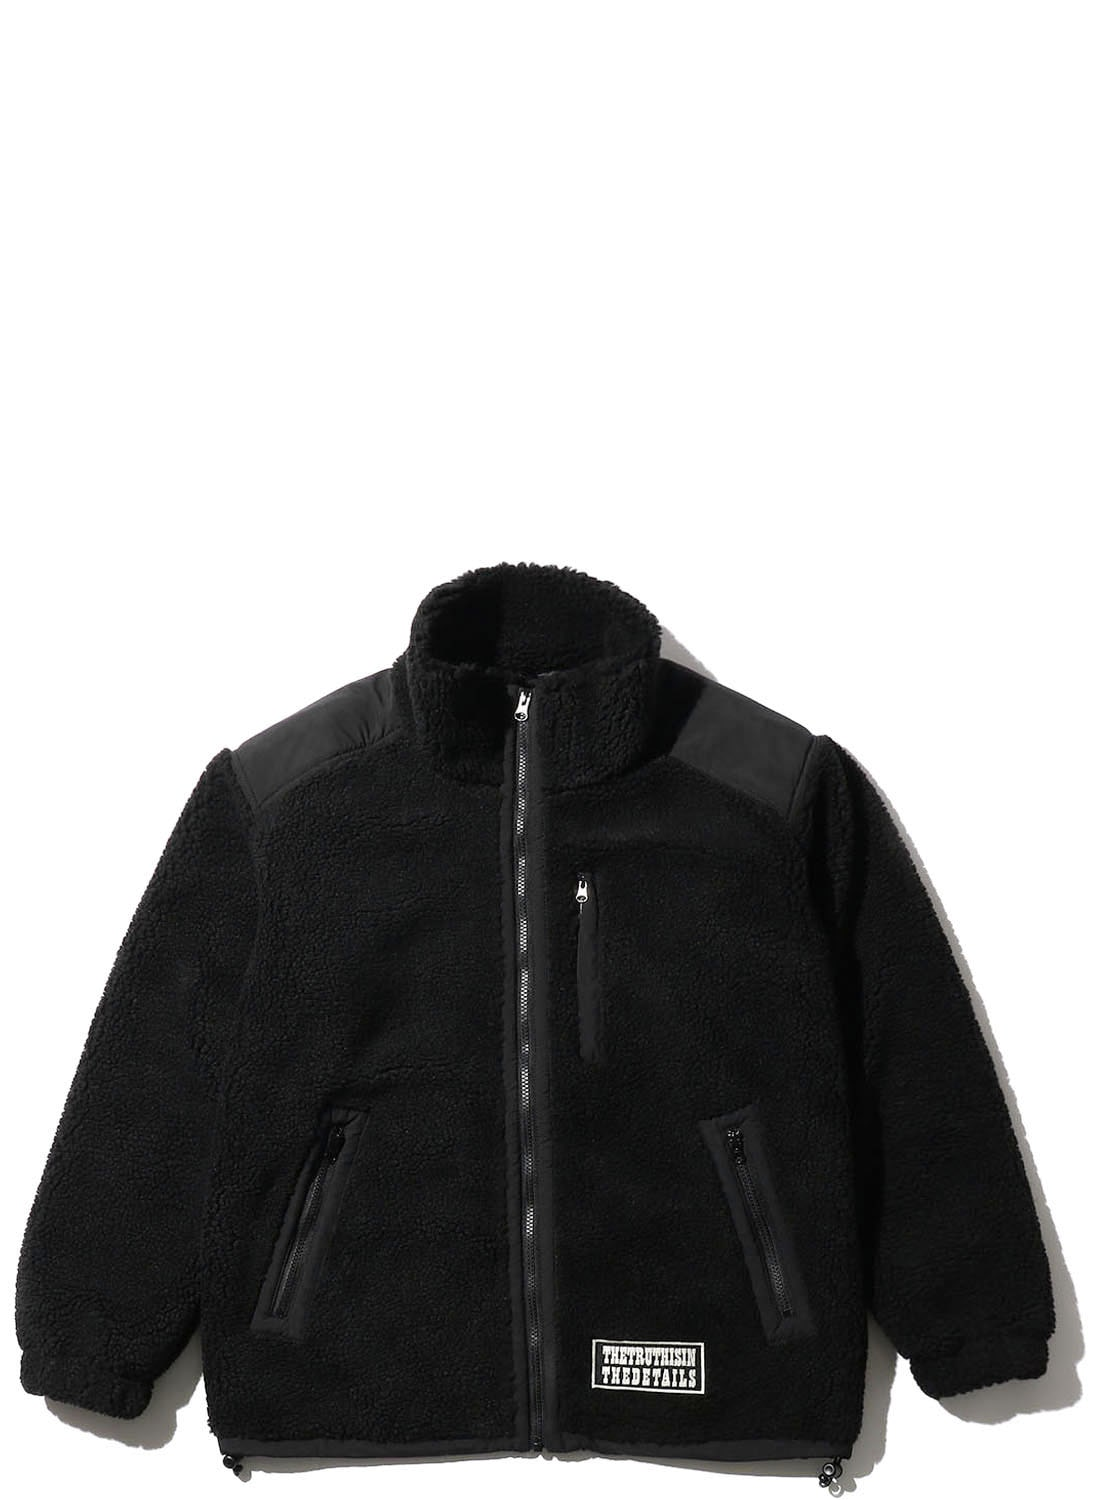 【日本限定】 BOA FLEECE JKT